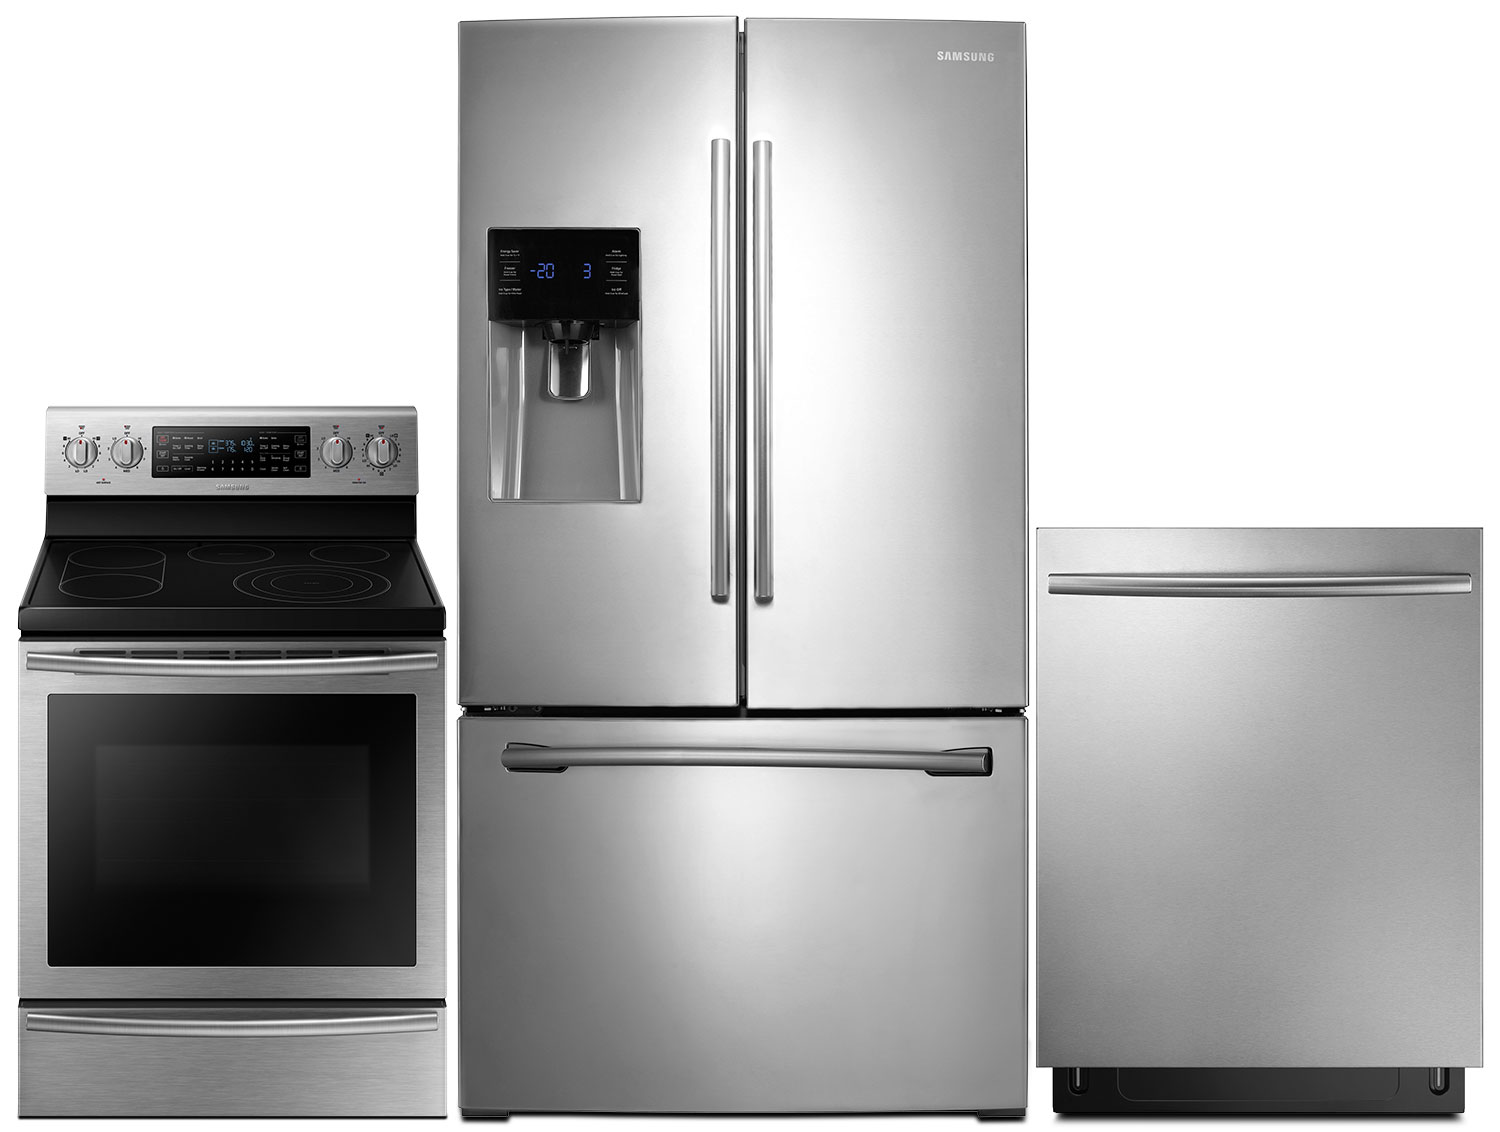 Cooking Products - Samsung 26 Cu. Ft. Refrigerator, 5.9 Cu. Ft. Range and Dishwasher – Stainless Steel